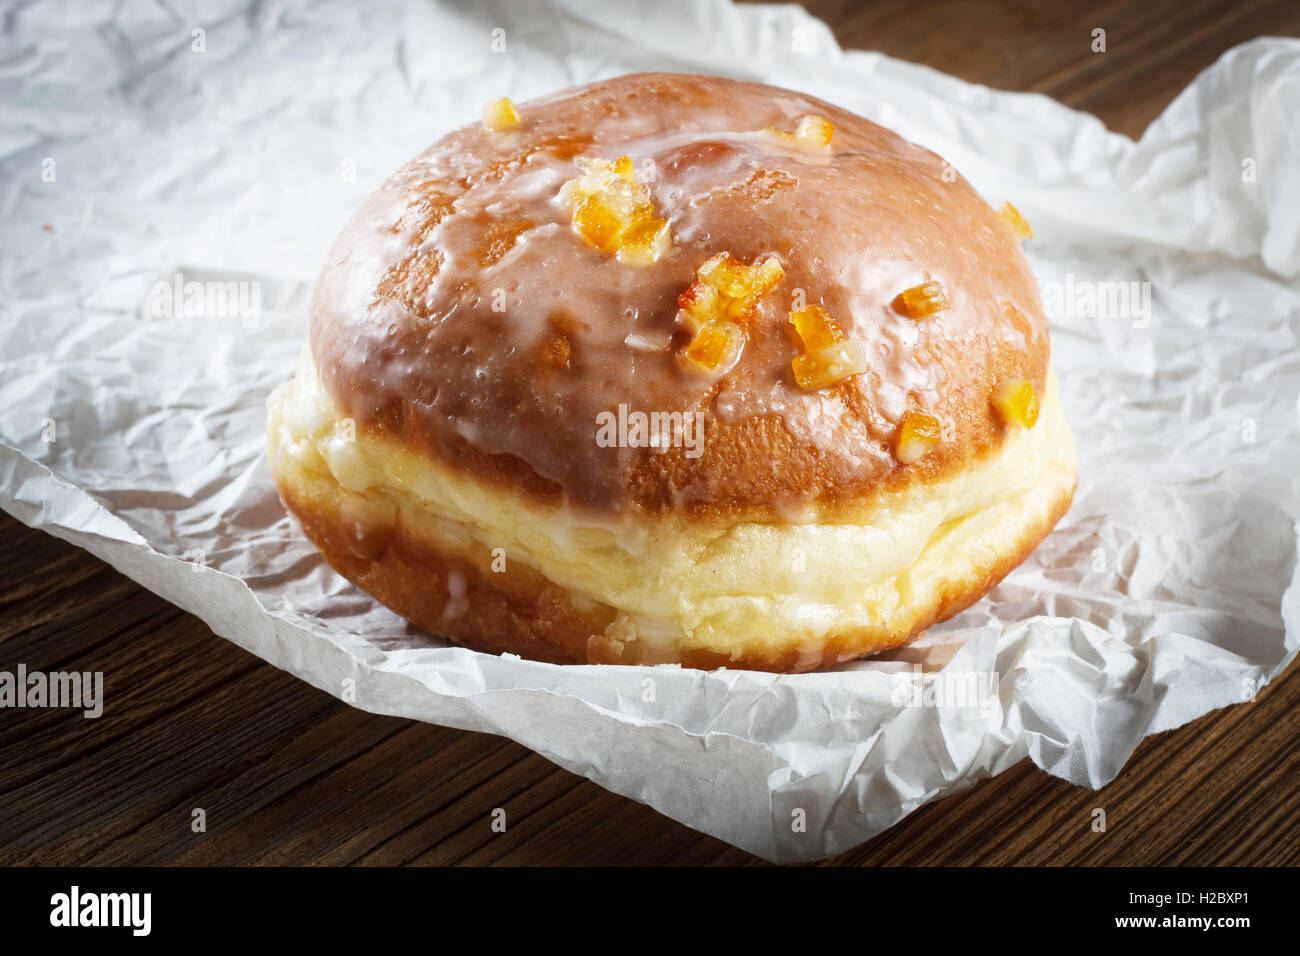 Doughnut filled with rose marmalade - Stock Image